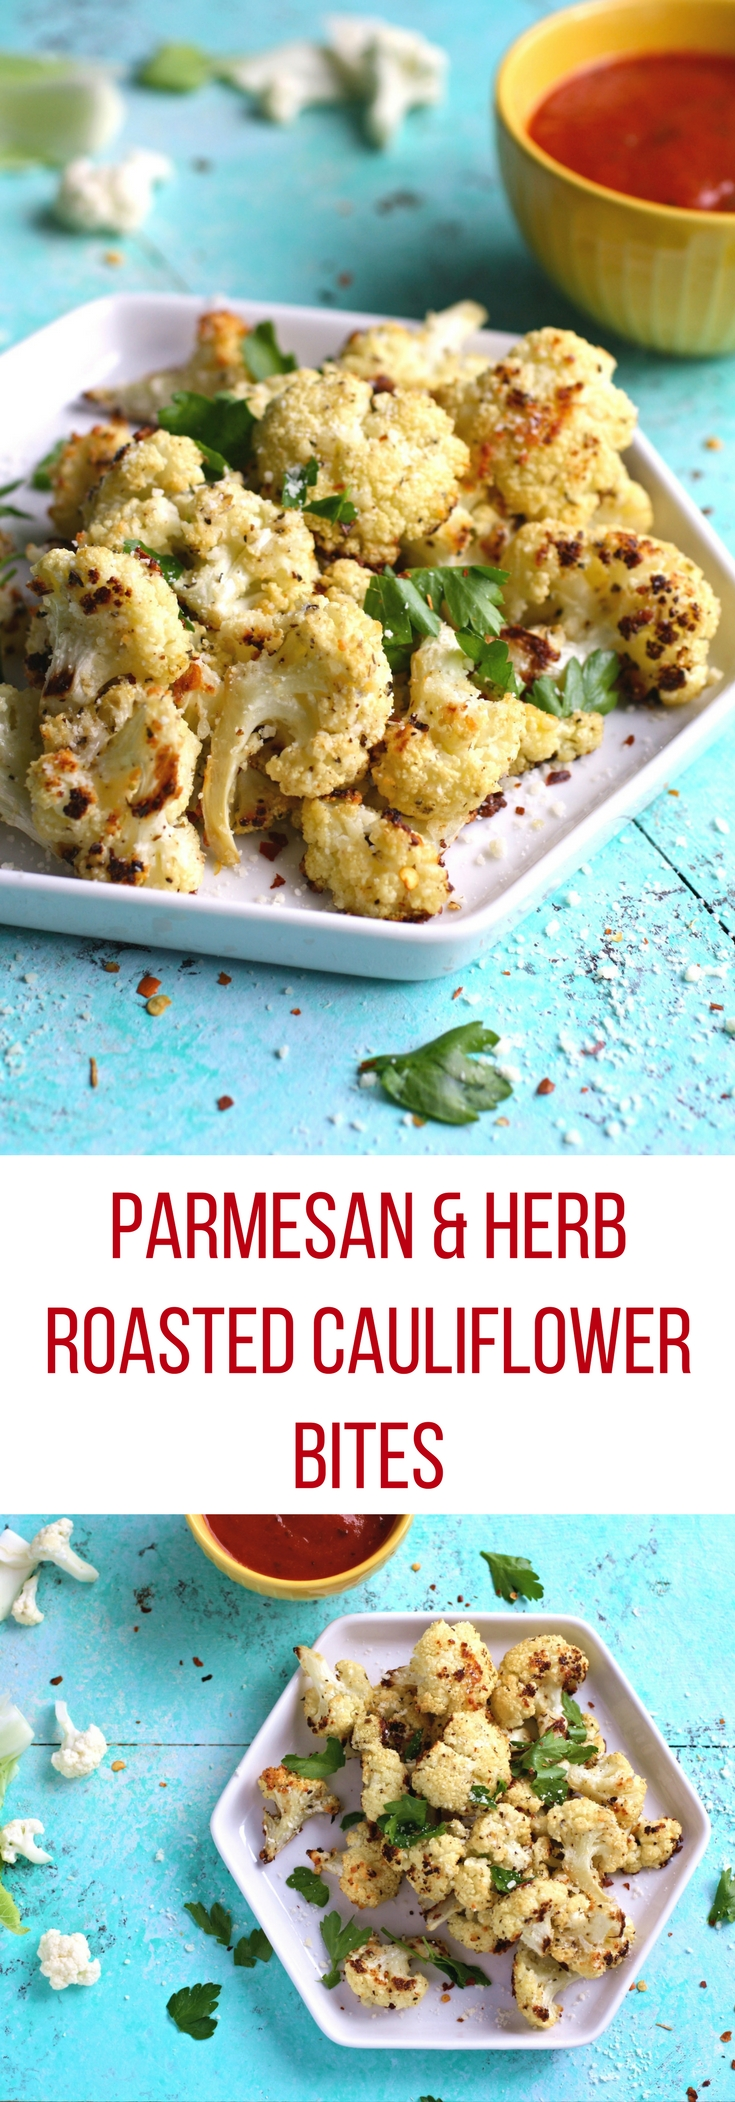 Parmesan & Herb Roasted Cauliflower Bites are a tasty appetizer. You'll love these roasted cauliflower bites for all their flavor!